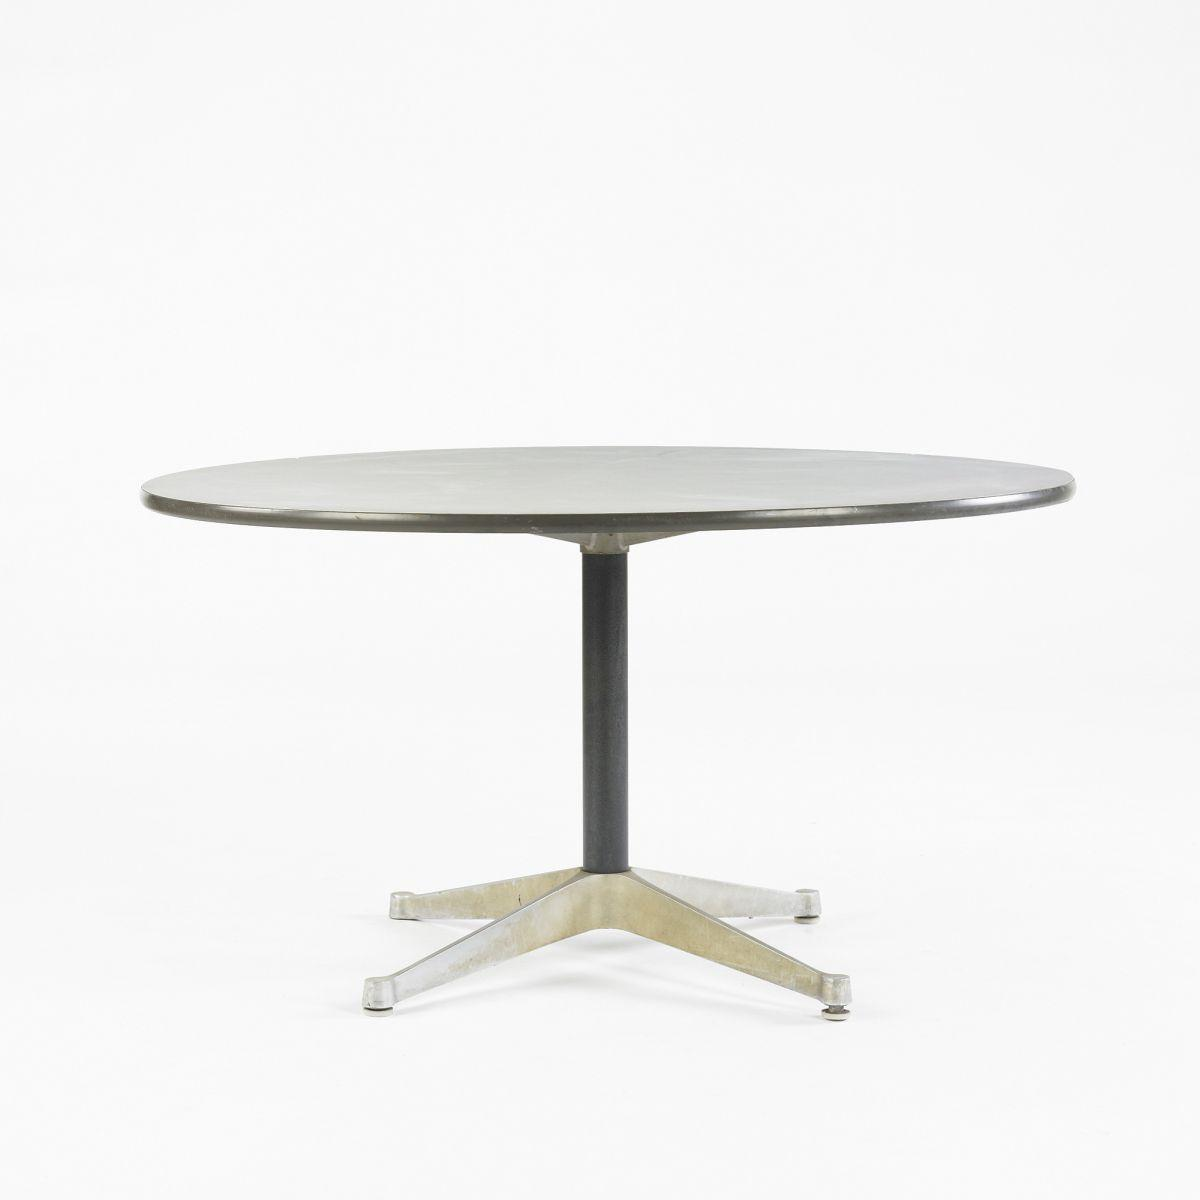 Image of: Almunium Eames Coffee Table